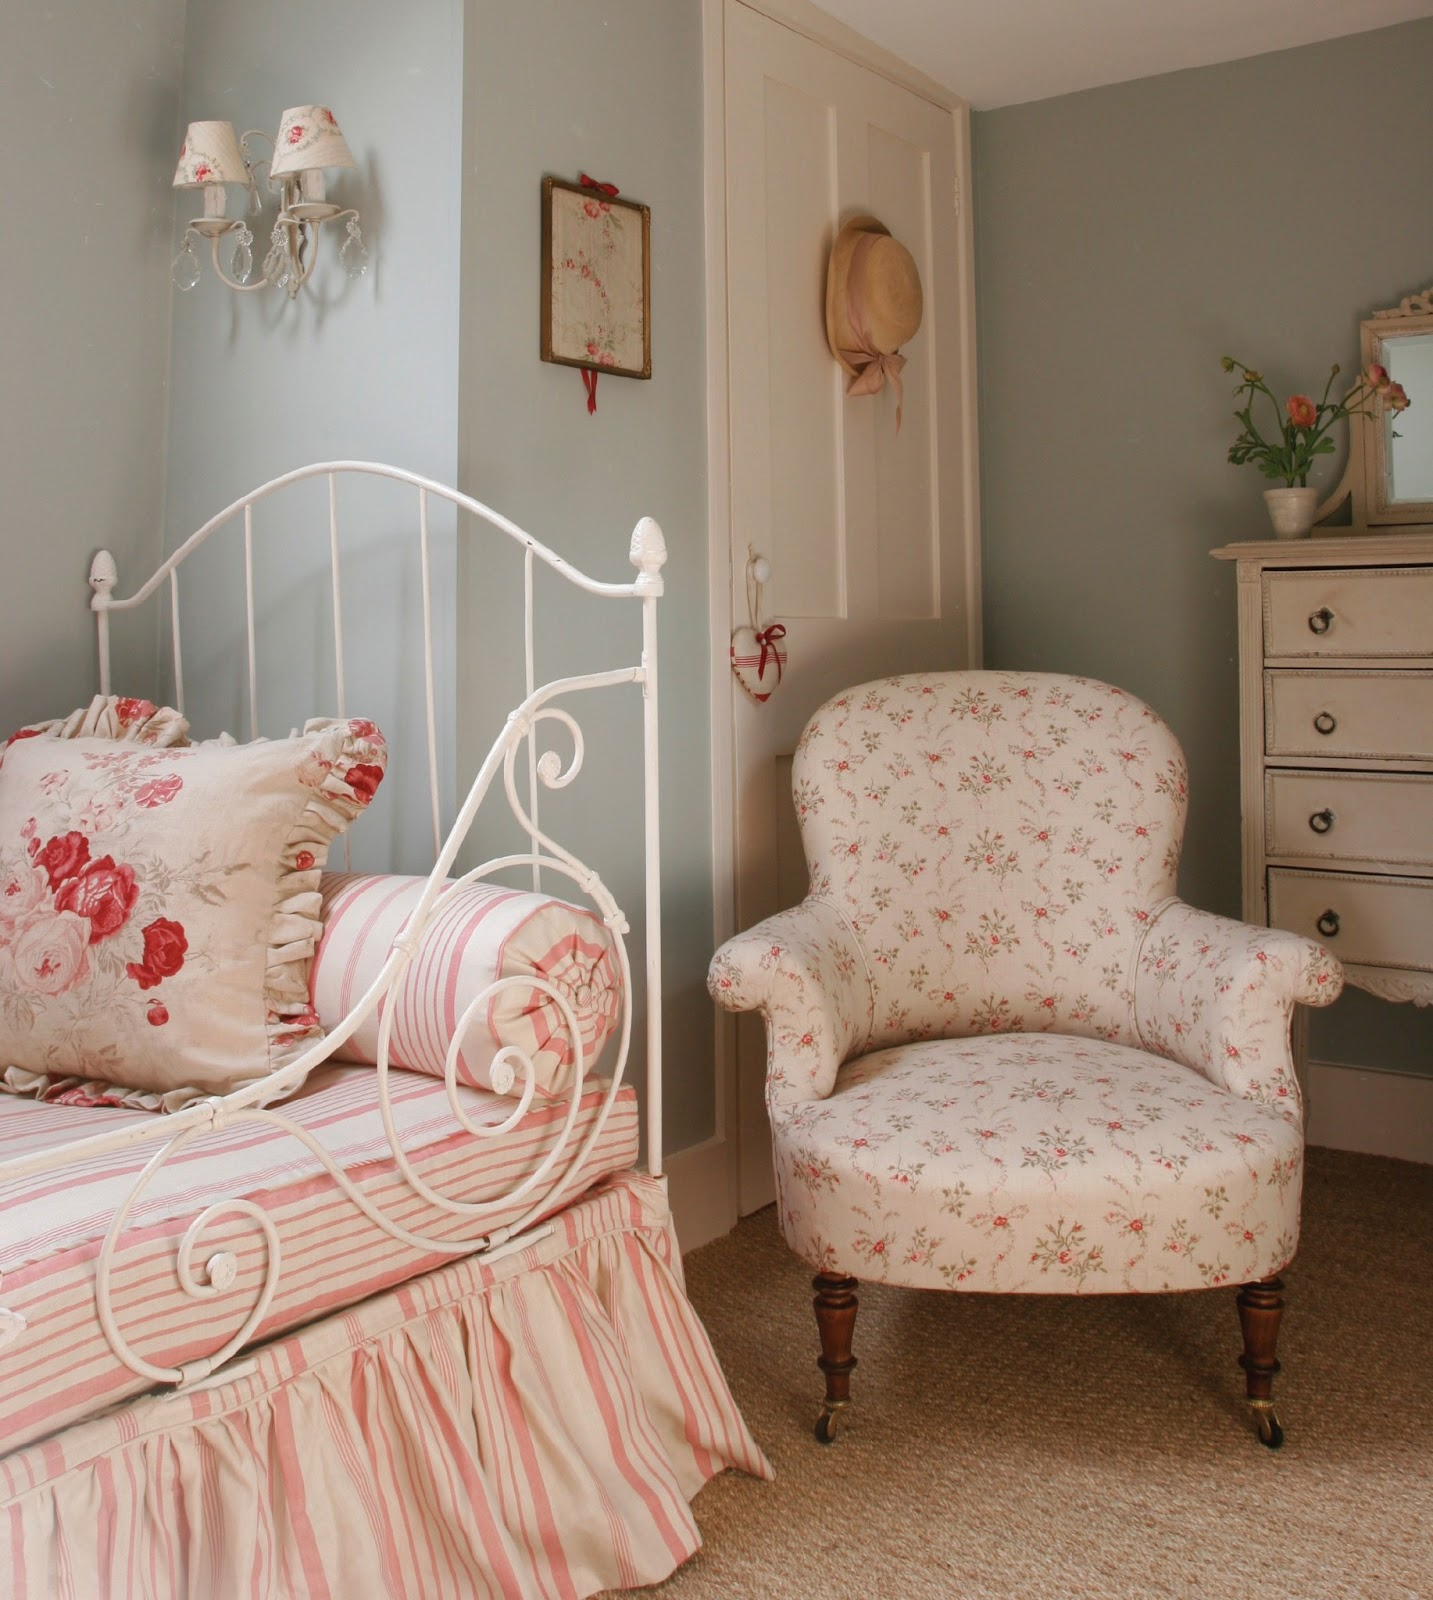 English Cottage Bedroom Of Hydrangea Hill Cottage Kate Forman 39 S English Country Charm